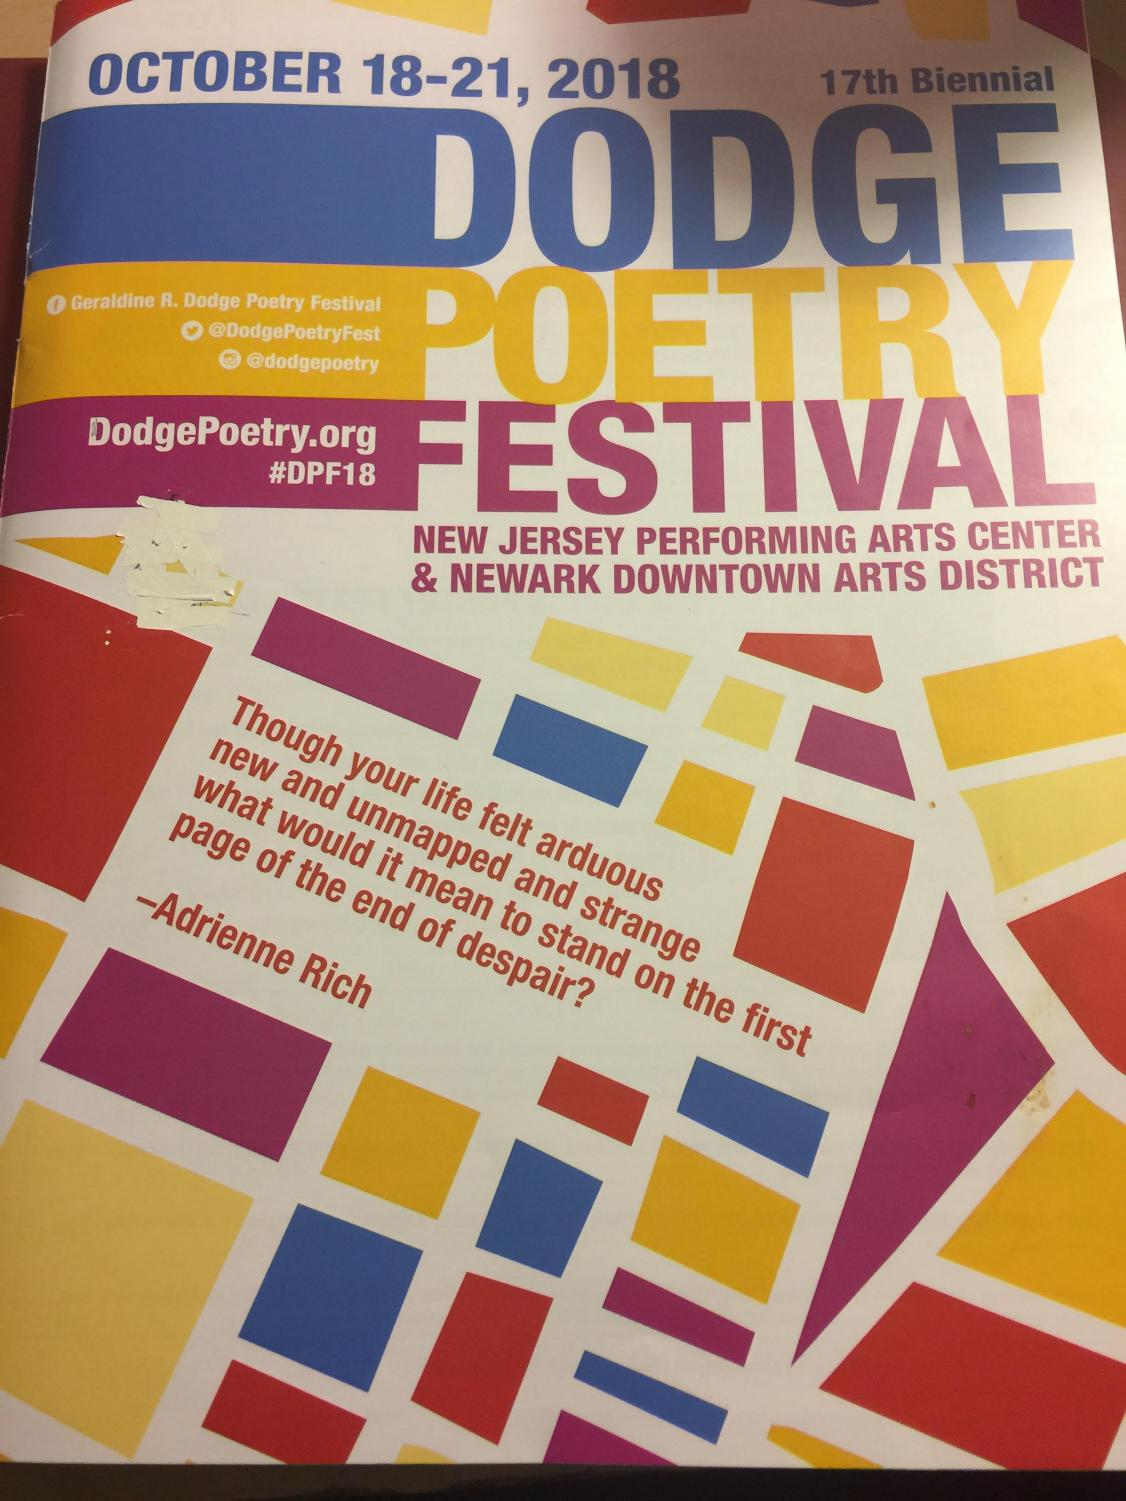 The poetry festival's pamphlet